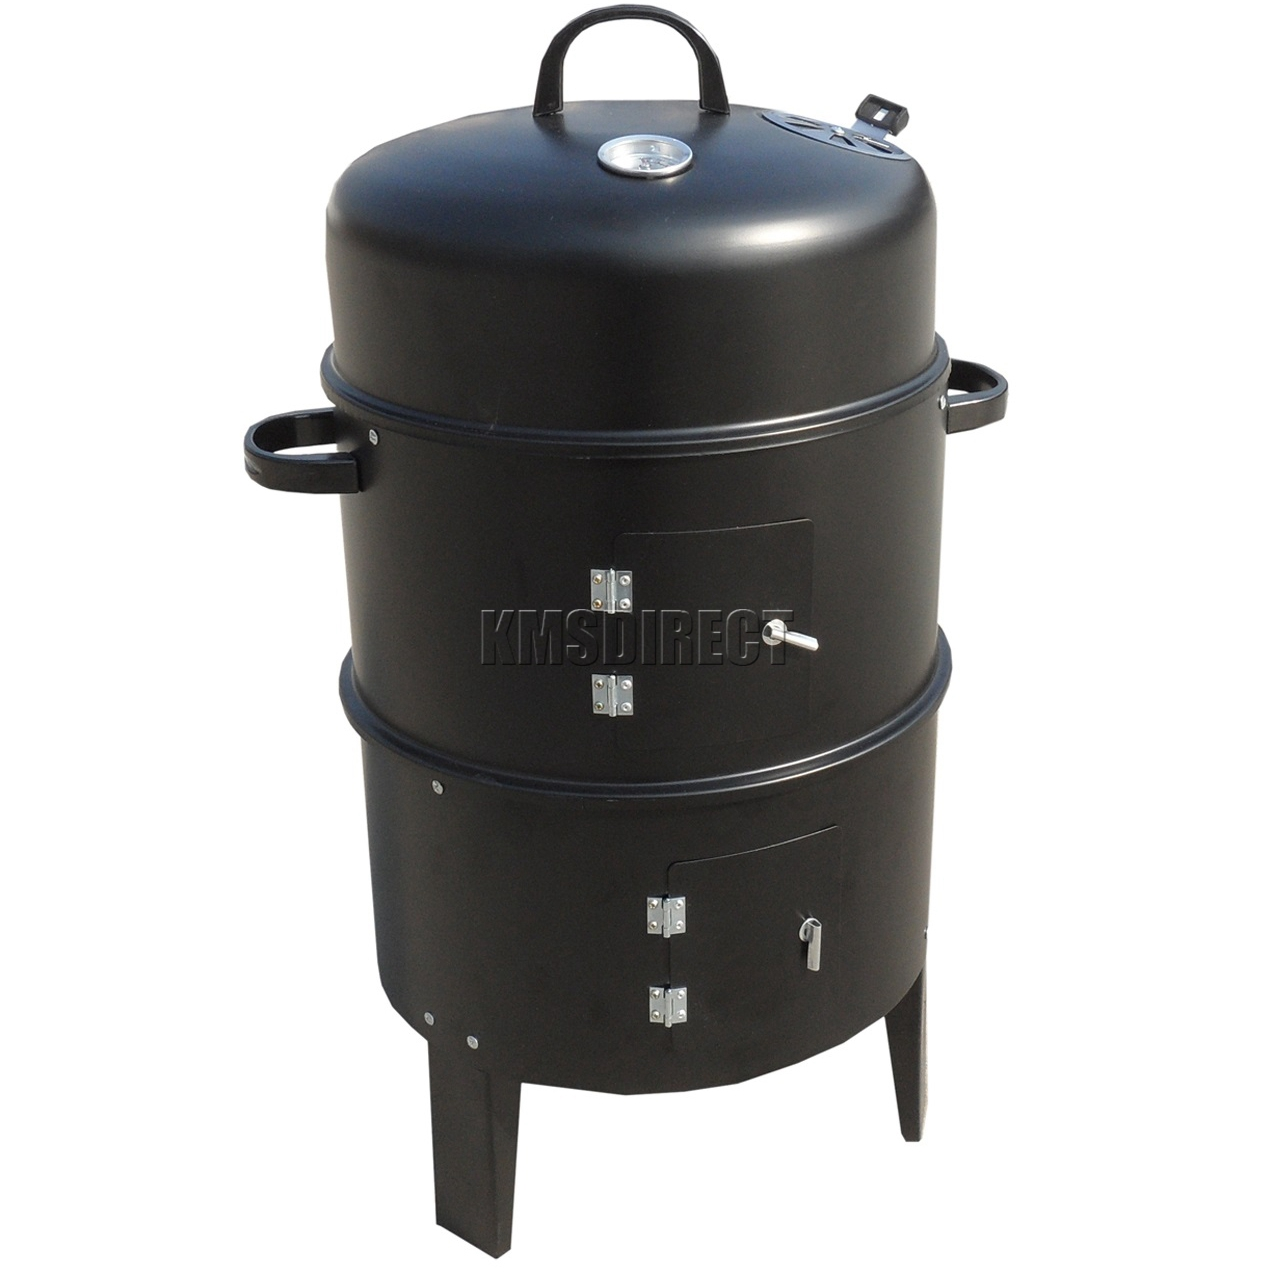 foxhunter black bbq charcoal grill barbecue smoker garden outdoor cooking steel ebay. Black Bedroom Furniture Sets. Home Design Ideas